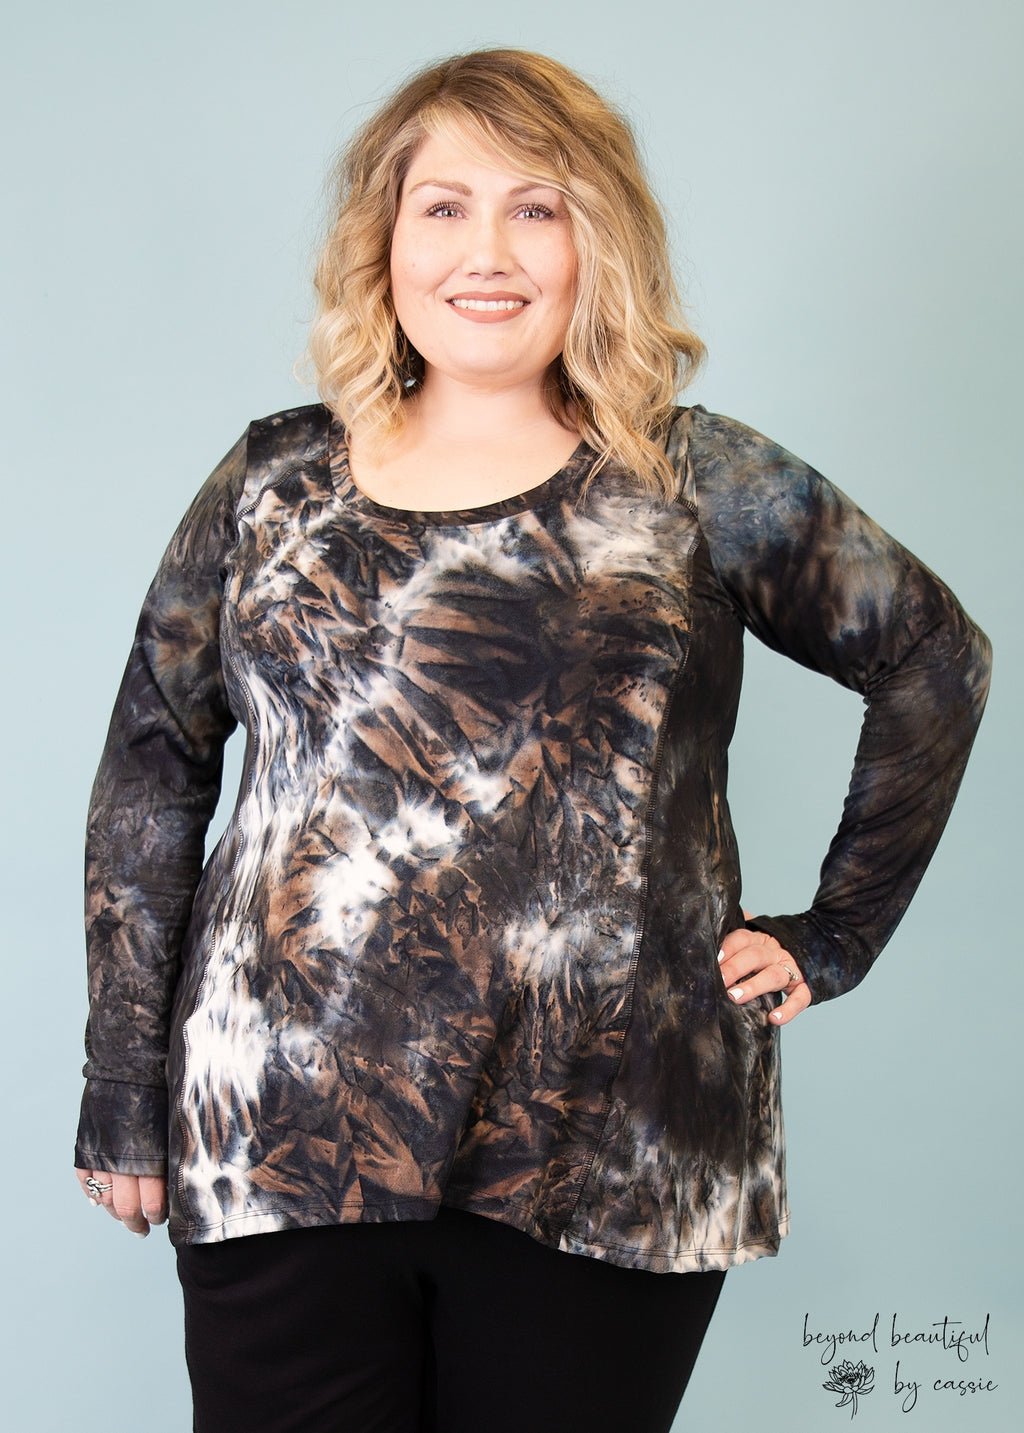 Paisley Raye Jade with Beyond Beautiful by Cassie, shop now at http://beyondbeautifulbycassie.com/